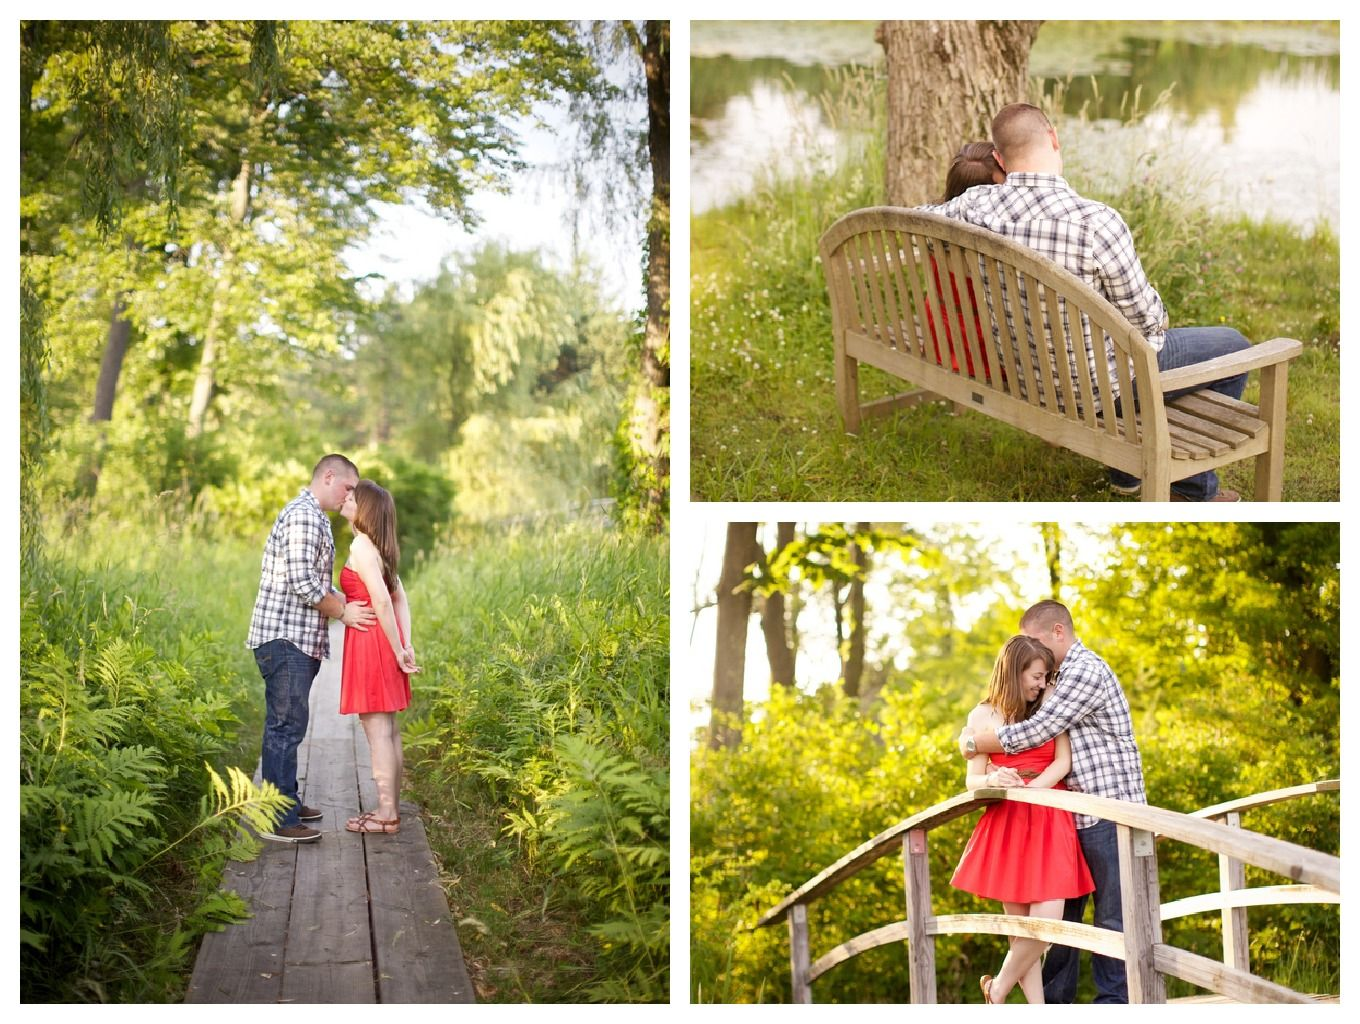 Massachusetts Country Engagement Pictures Need to have a bridge picture!